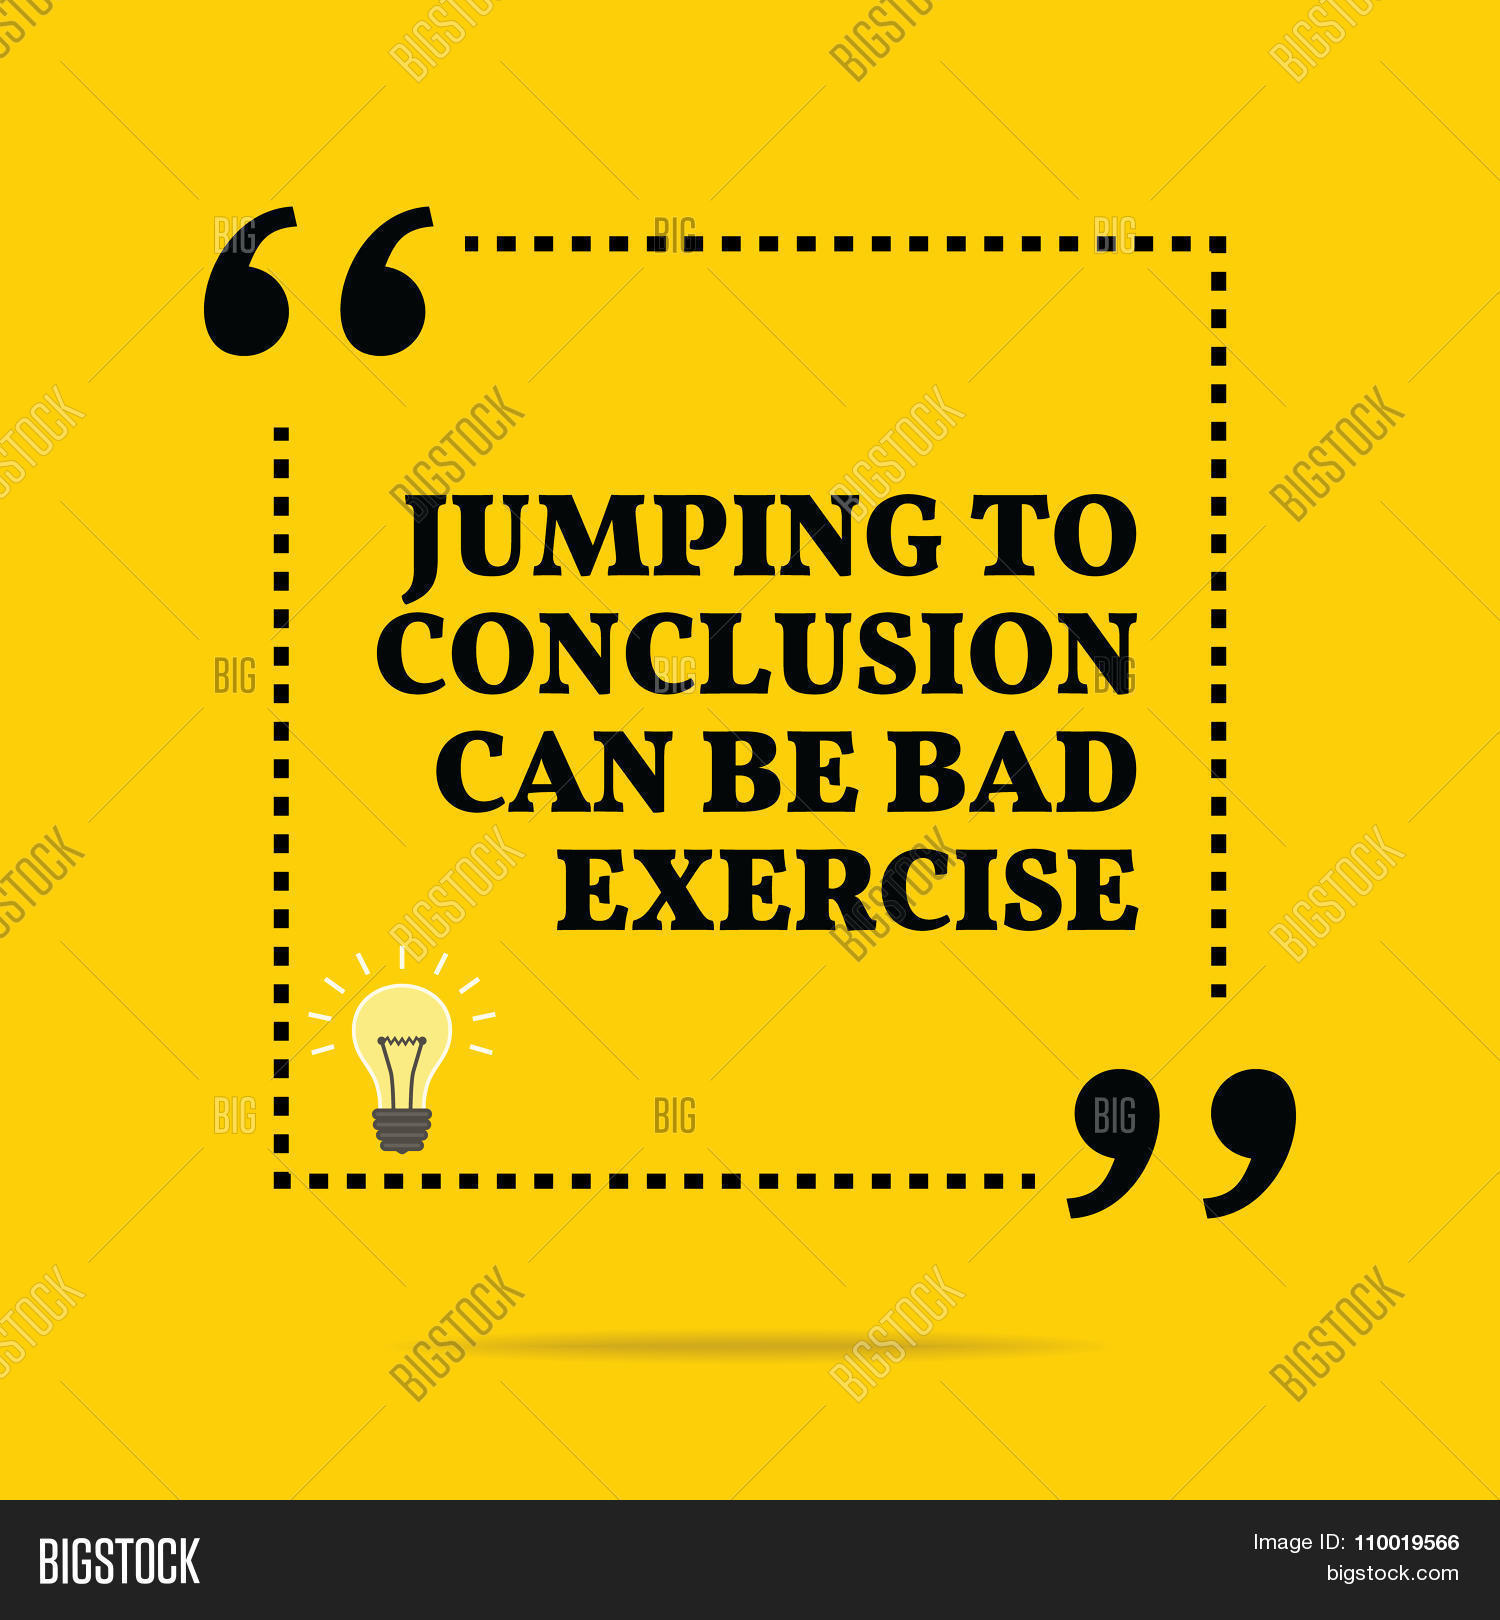 Jumping To Conclusions Quotes: Inspirational Motivational Quote. Vector & Photo